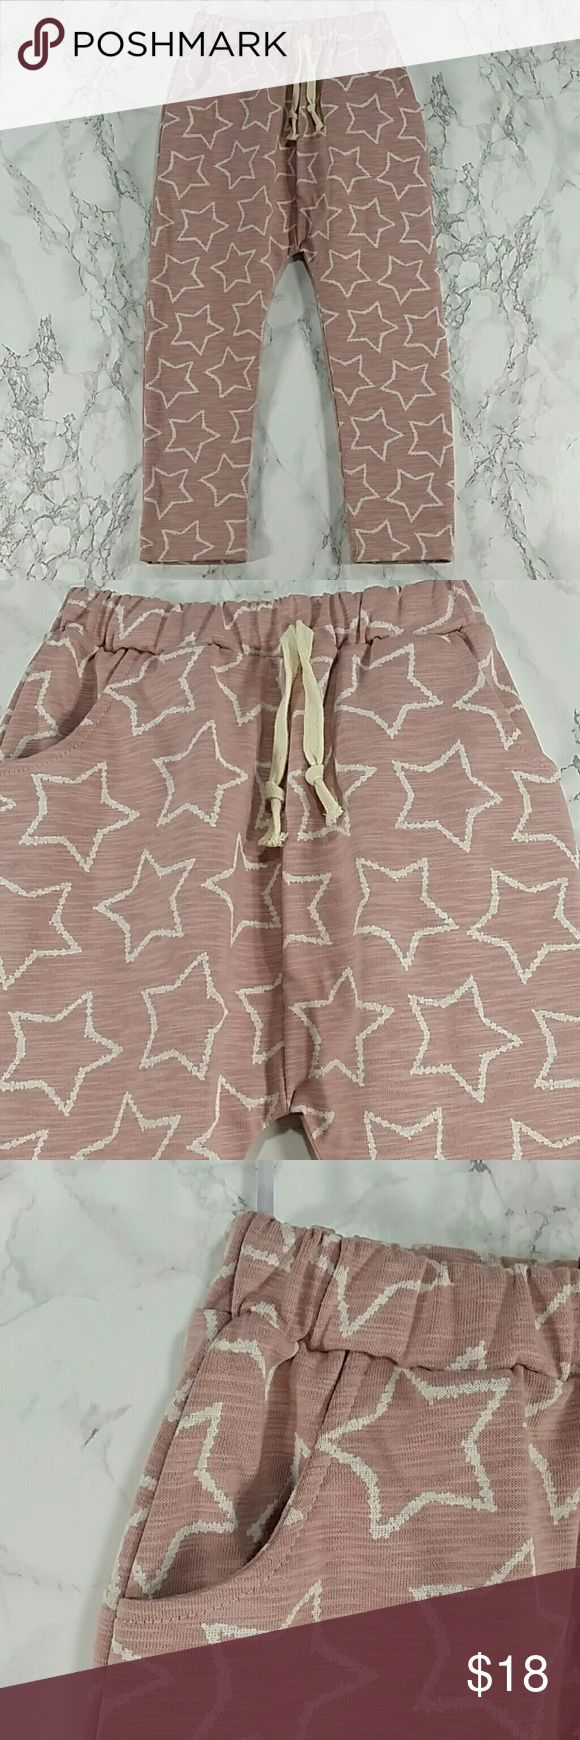 Light pink stars  Harem Sweatpants. Kids Adorable light pink harem sweatpants with stars design. Have pockets Pull up style.  This item is brand new and never used. No tags Bottoms Sweatpants & Joggers